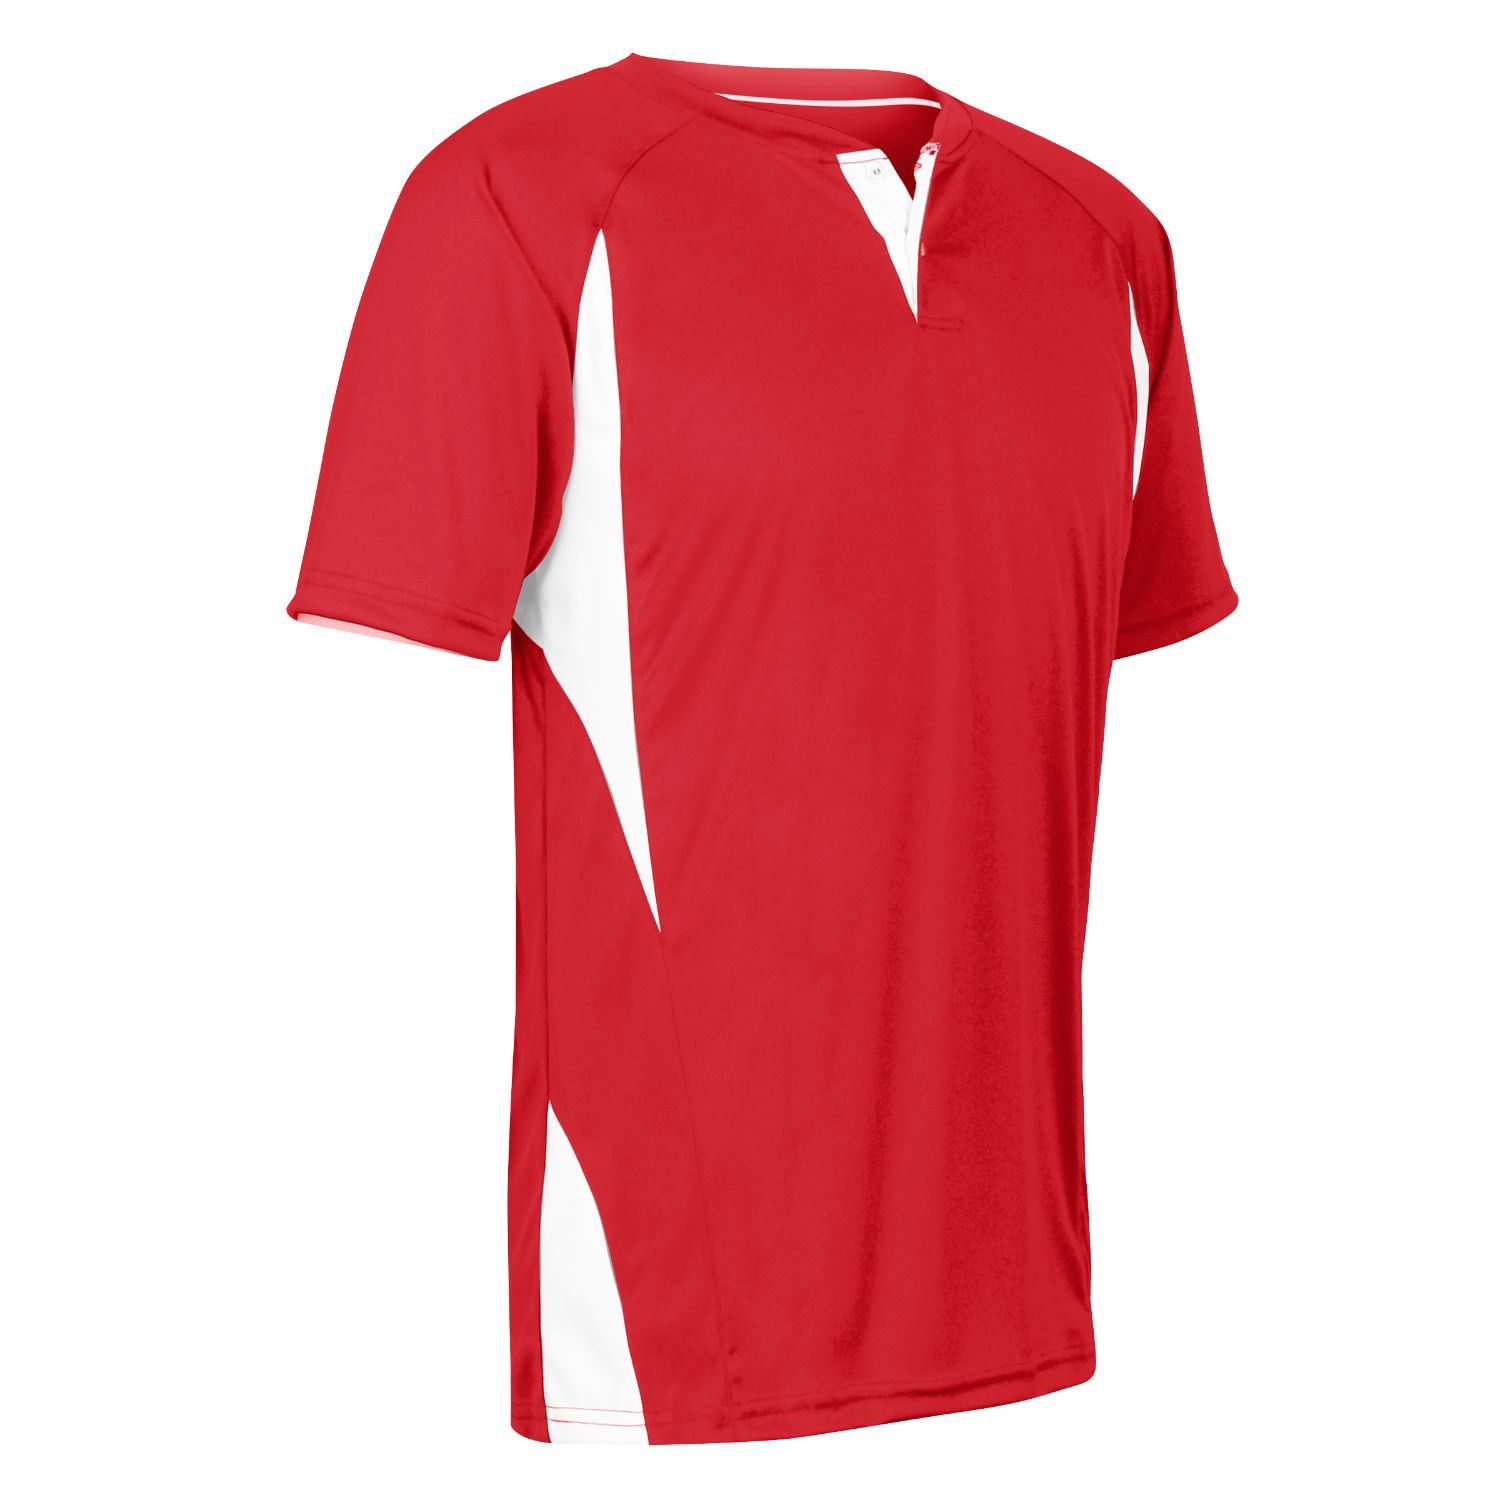 Champro Adult 2 Button Wild Card Jersey Scarlet White Small